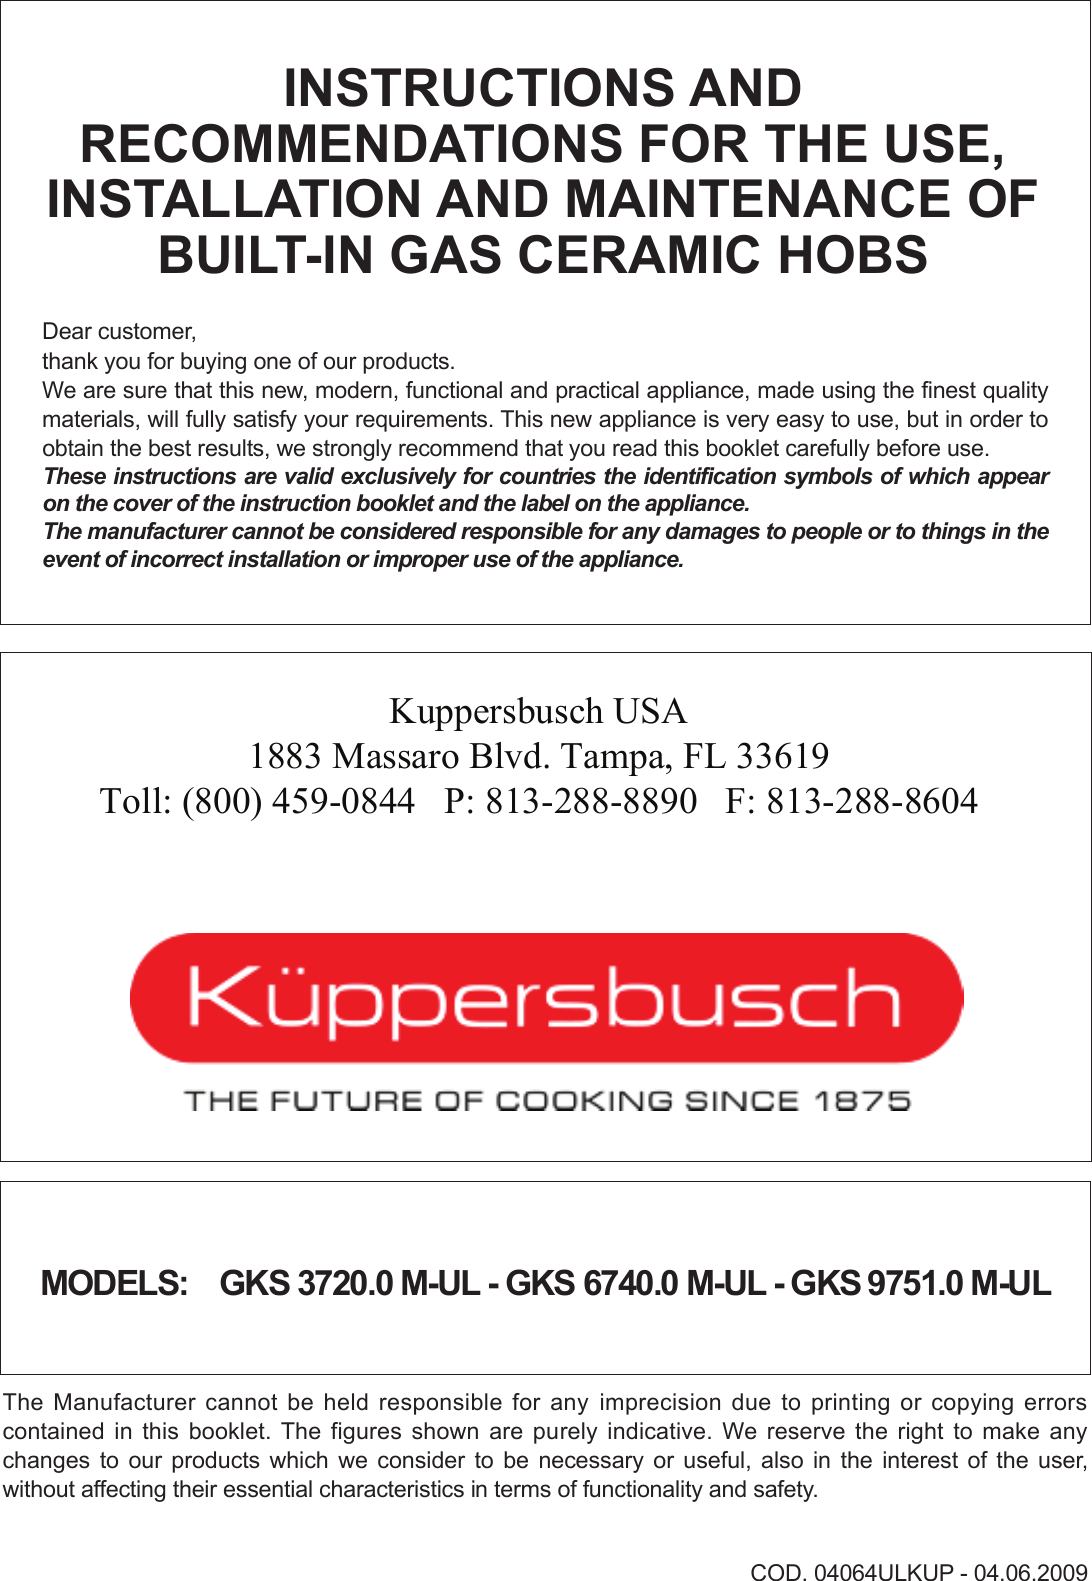 Kuppersbusch Usa Gks 3720 0 M Ul Users Manual 04064ulkup Auto Rod Controls Wiring Diagram